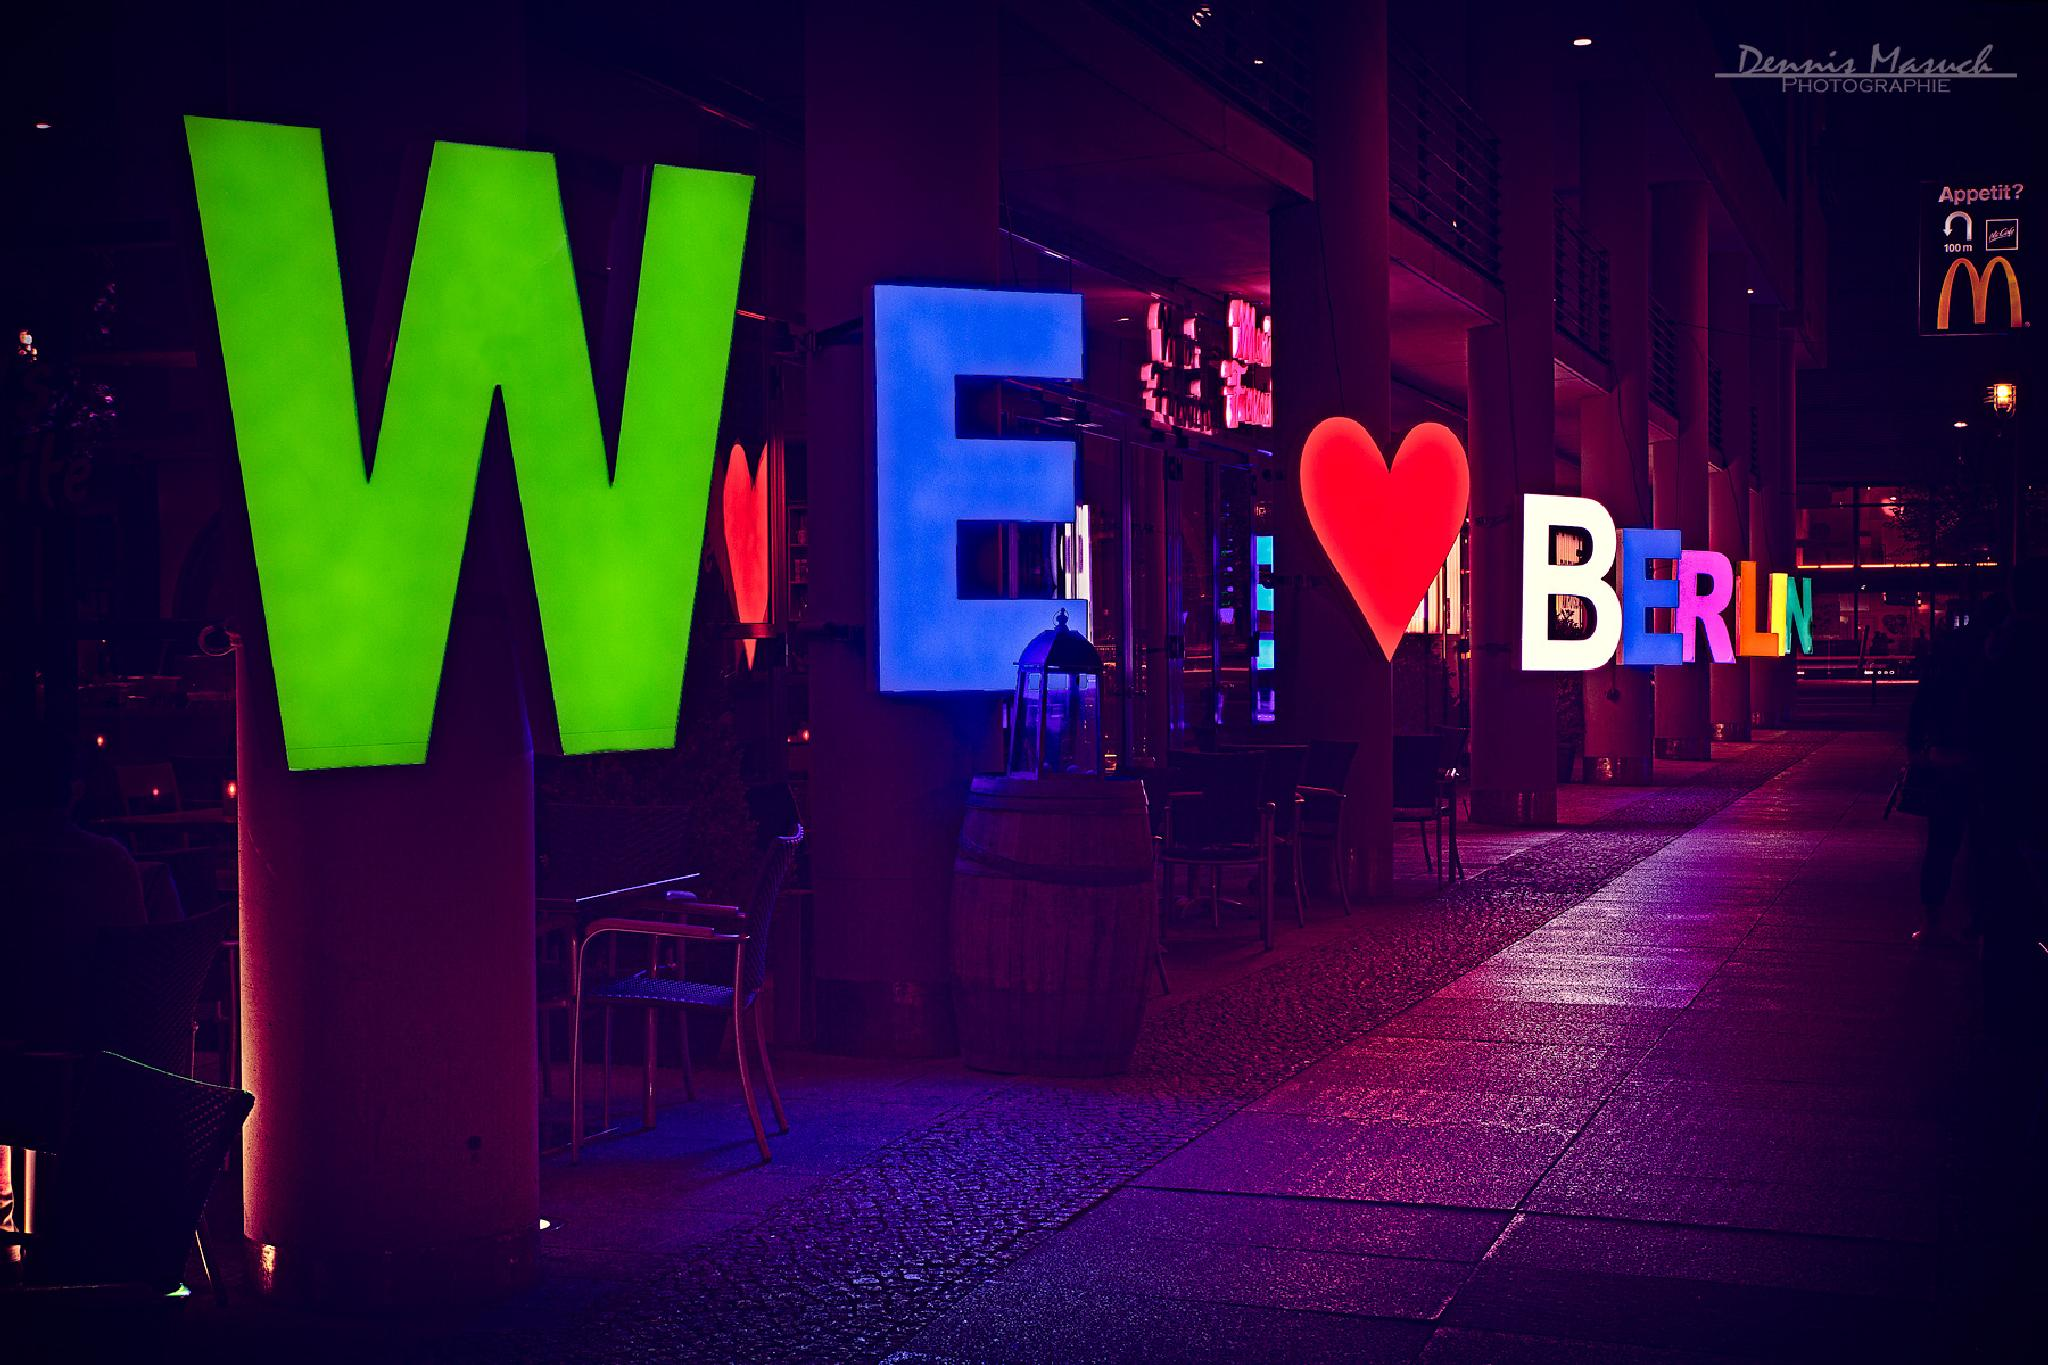 WE LOVE BERLIN by Dennis Masuch